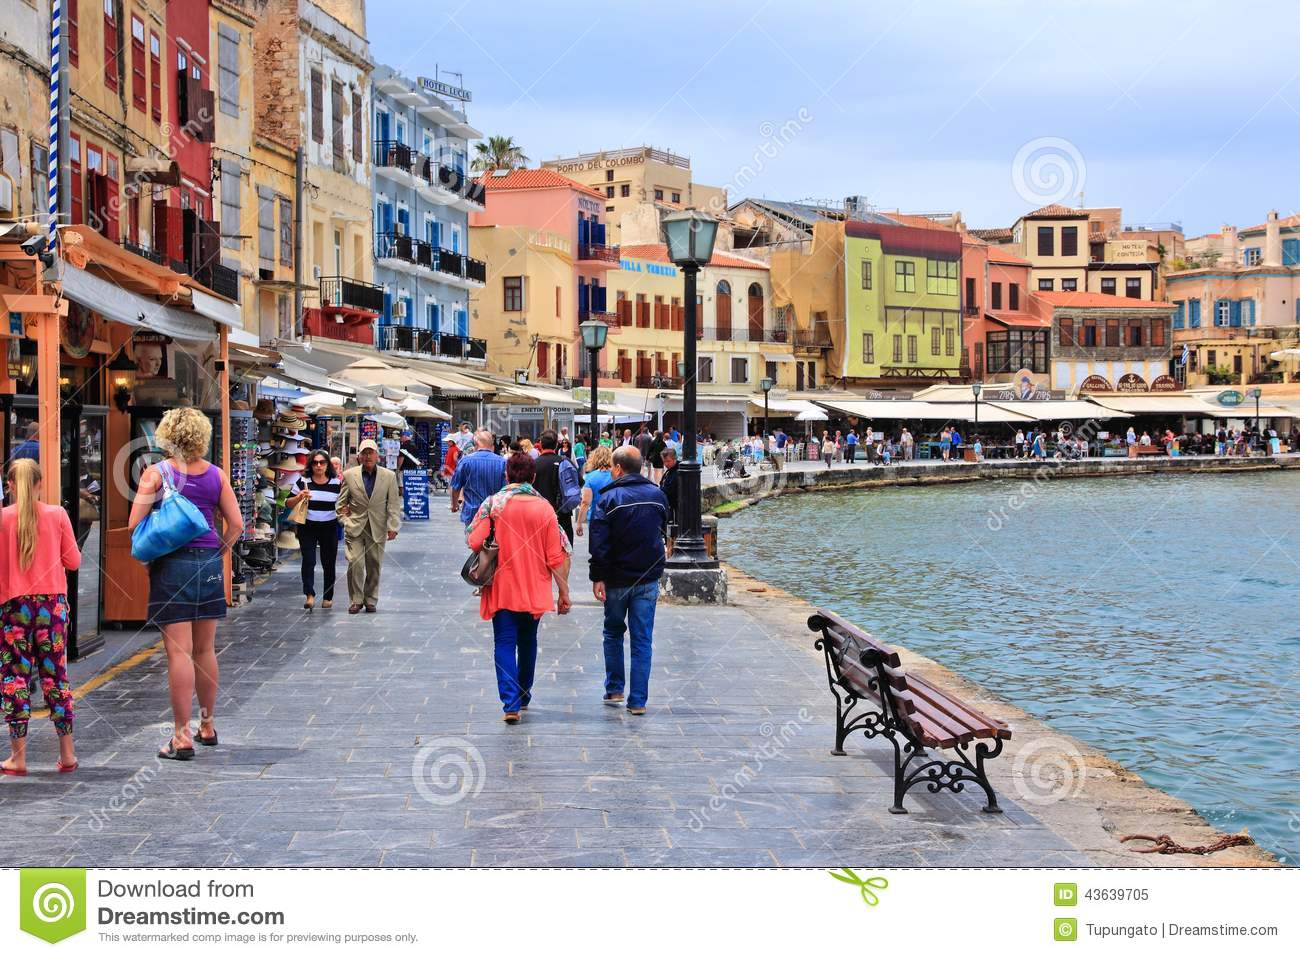 CHANIA, GREECE - MAY 18, 2014: People visit Old Town of Chania, Crete ...